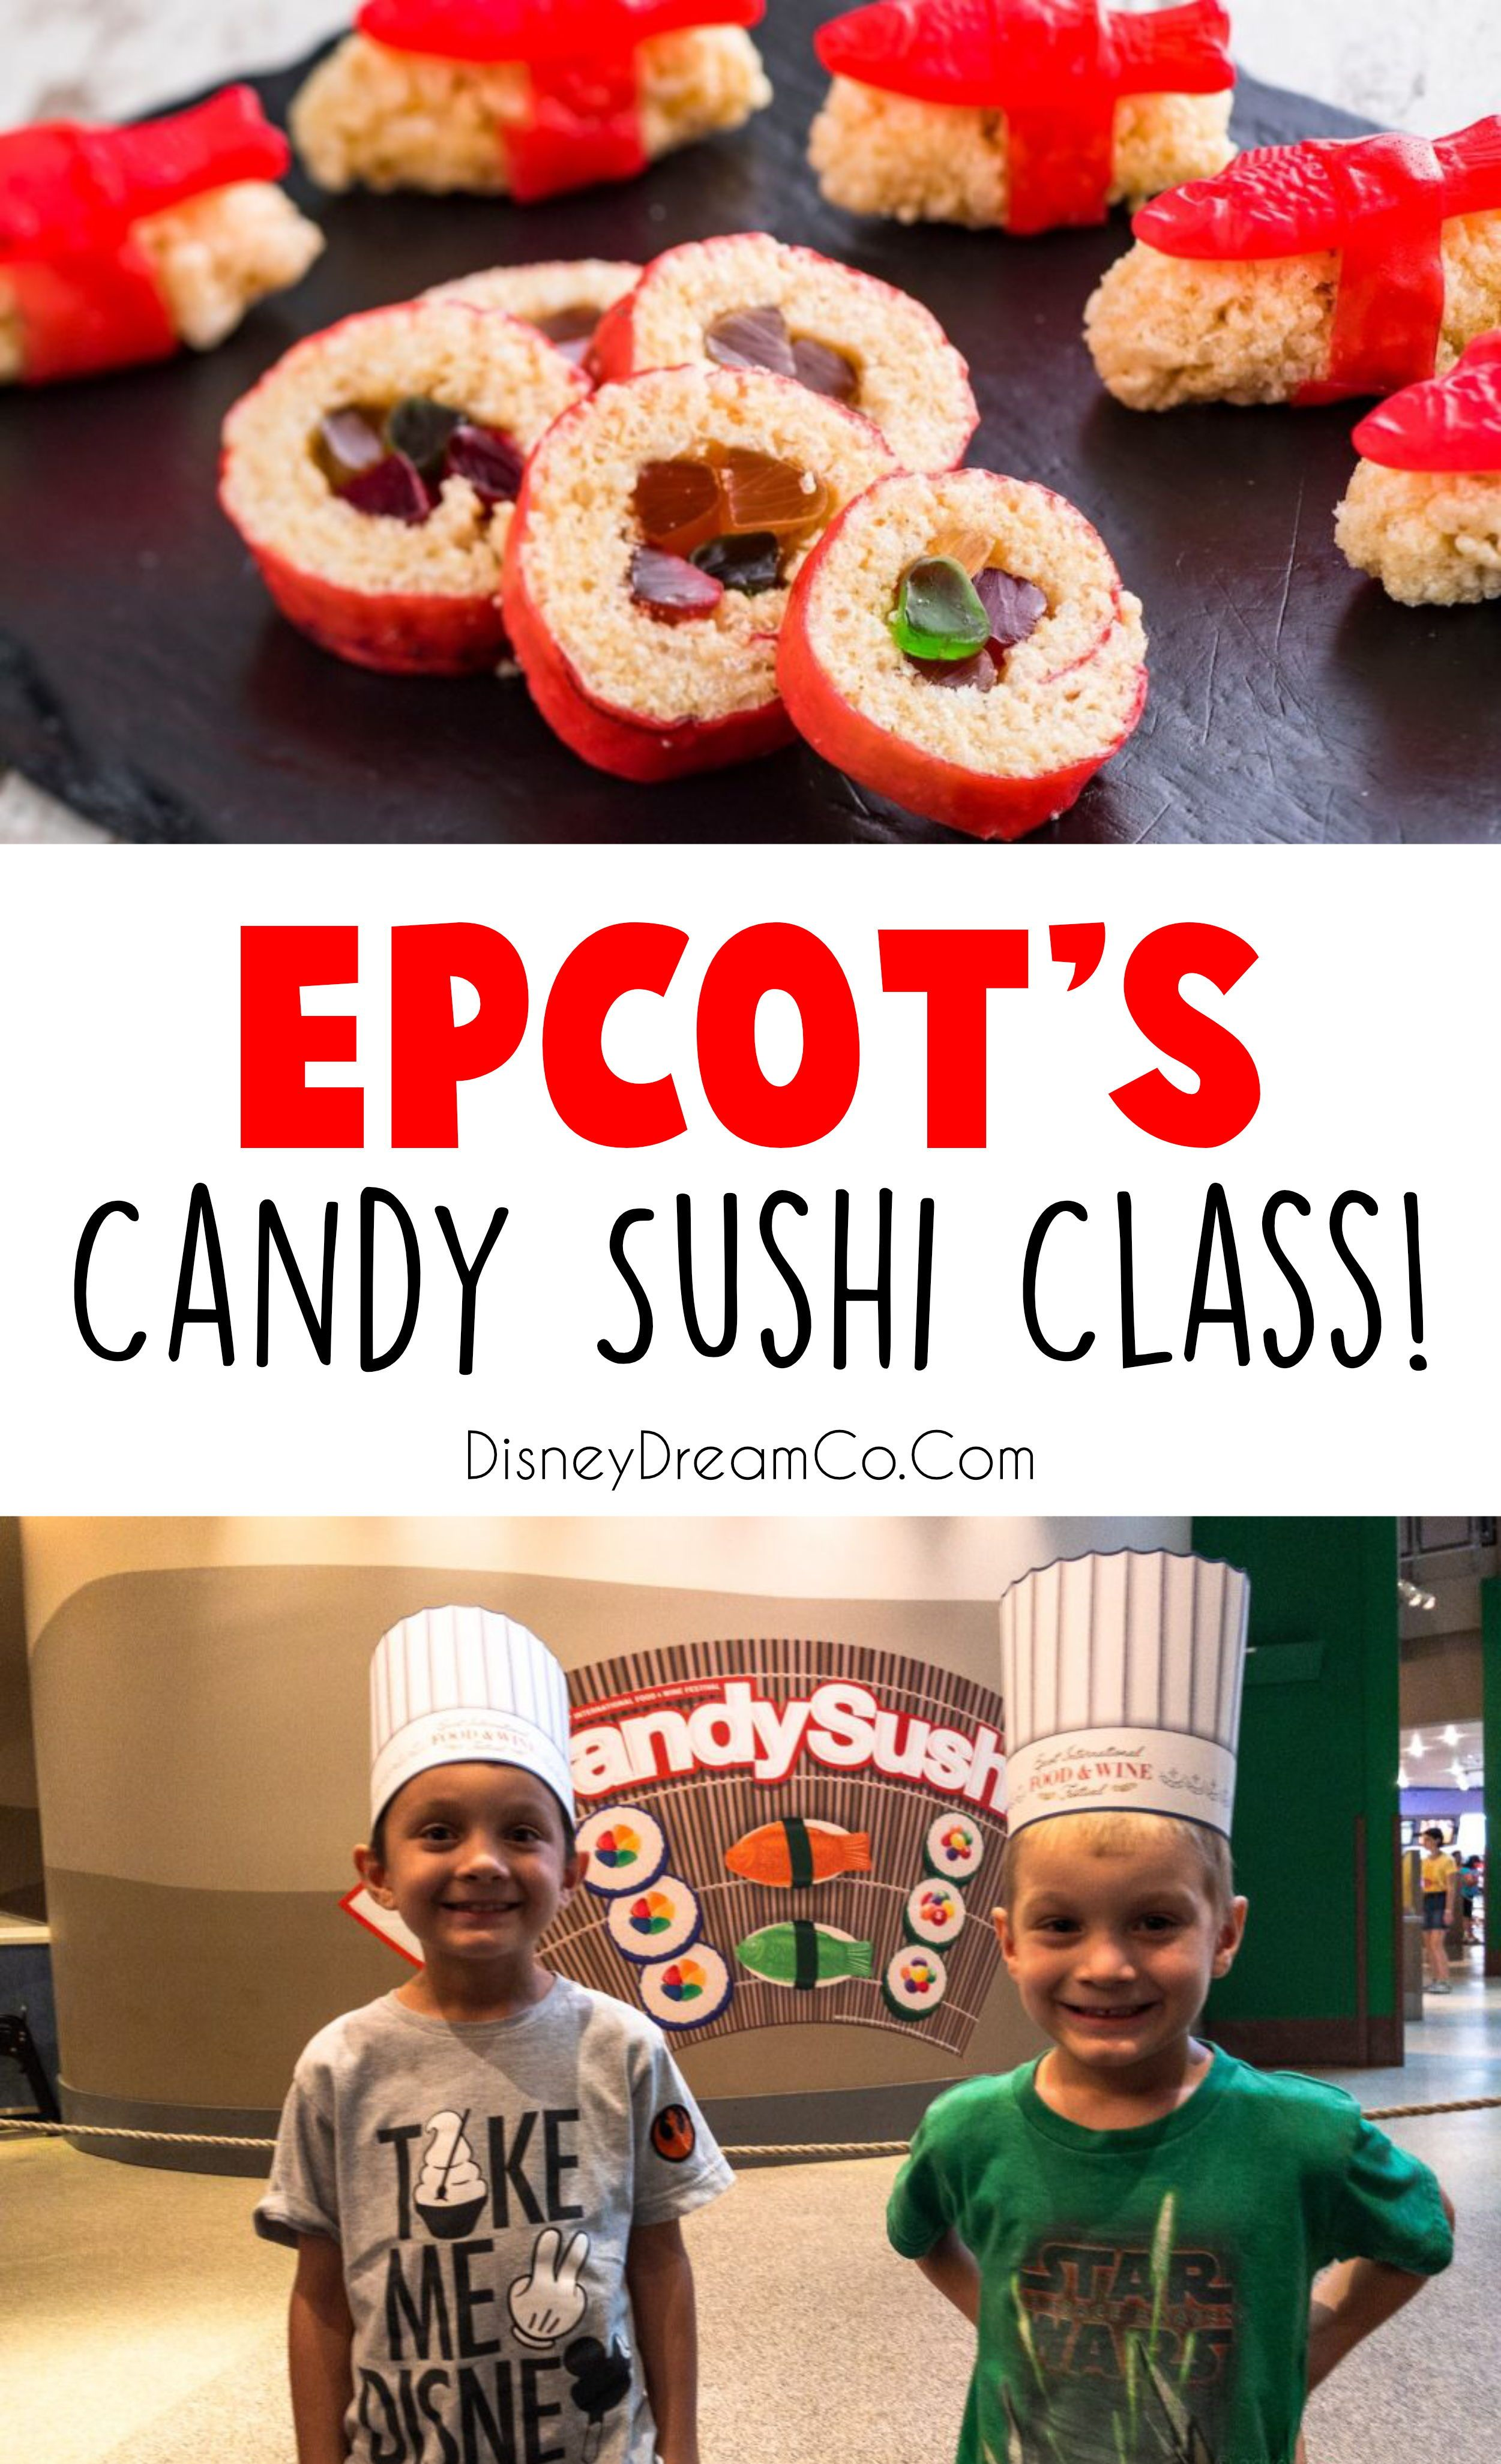 Candy Sushi Epcot Food Candy Sushi Dining At Disney World